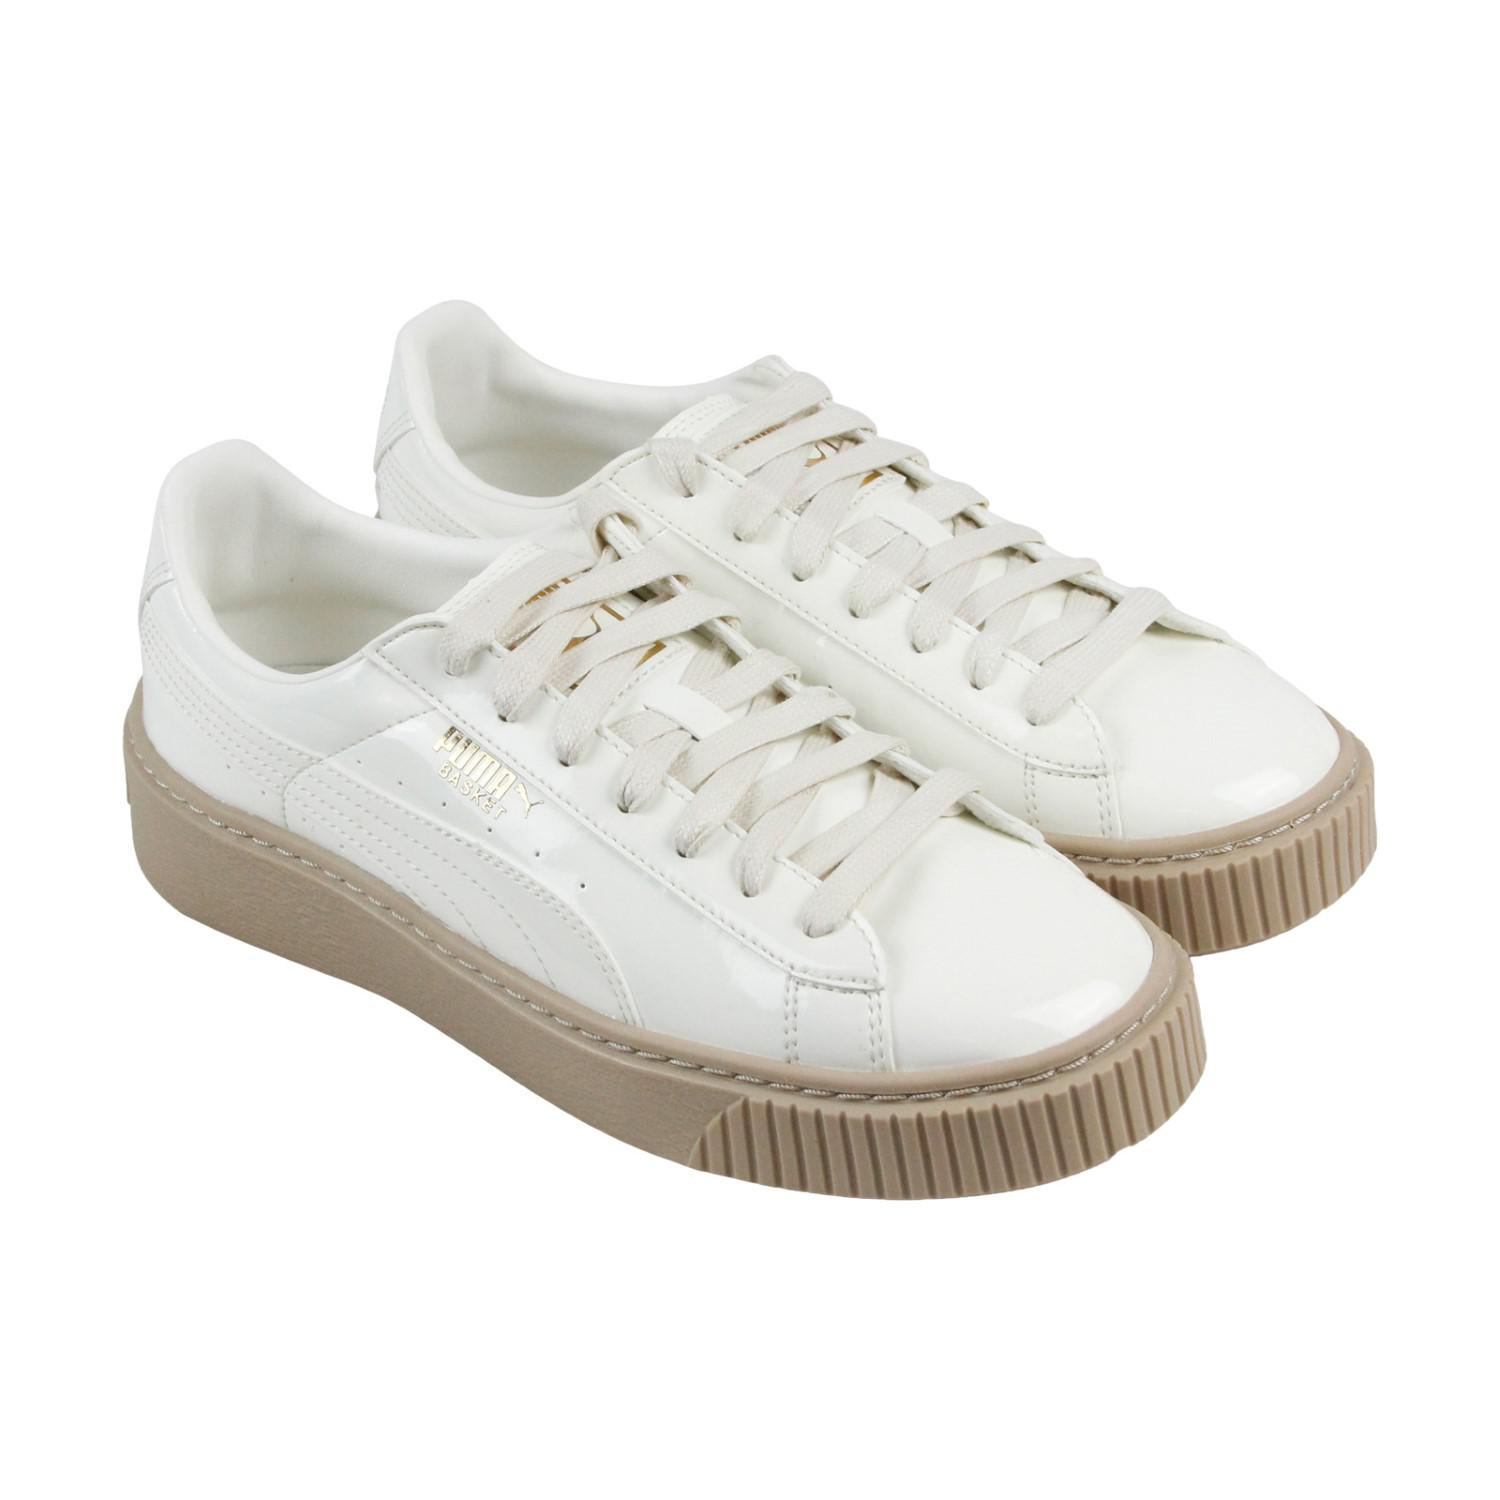 fba3073ece0 Women s White Basket Platform Patent Marshmallow Marshmallow Lace Up  Sneakers